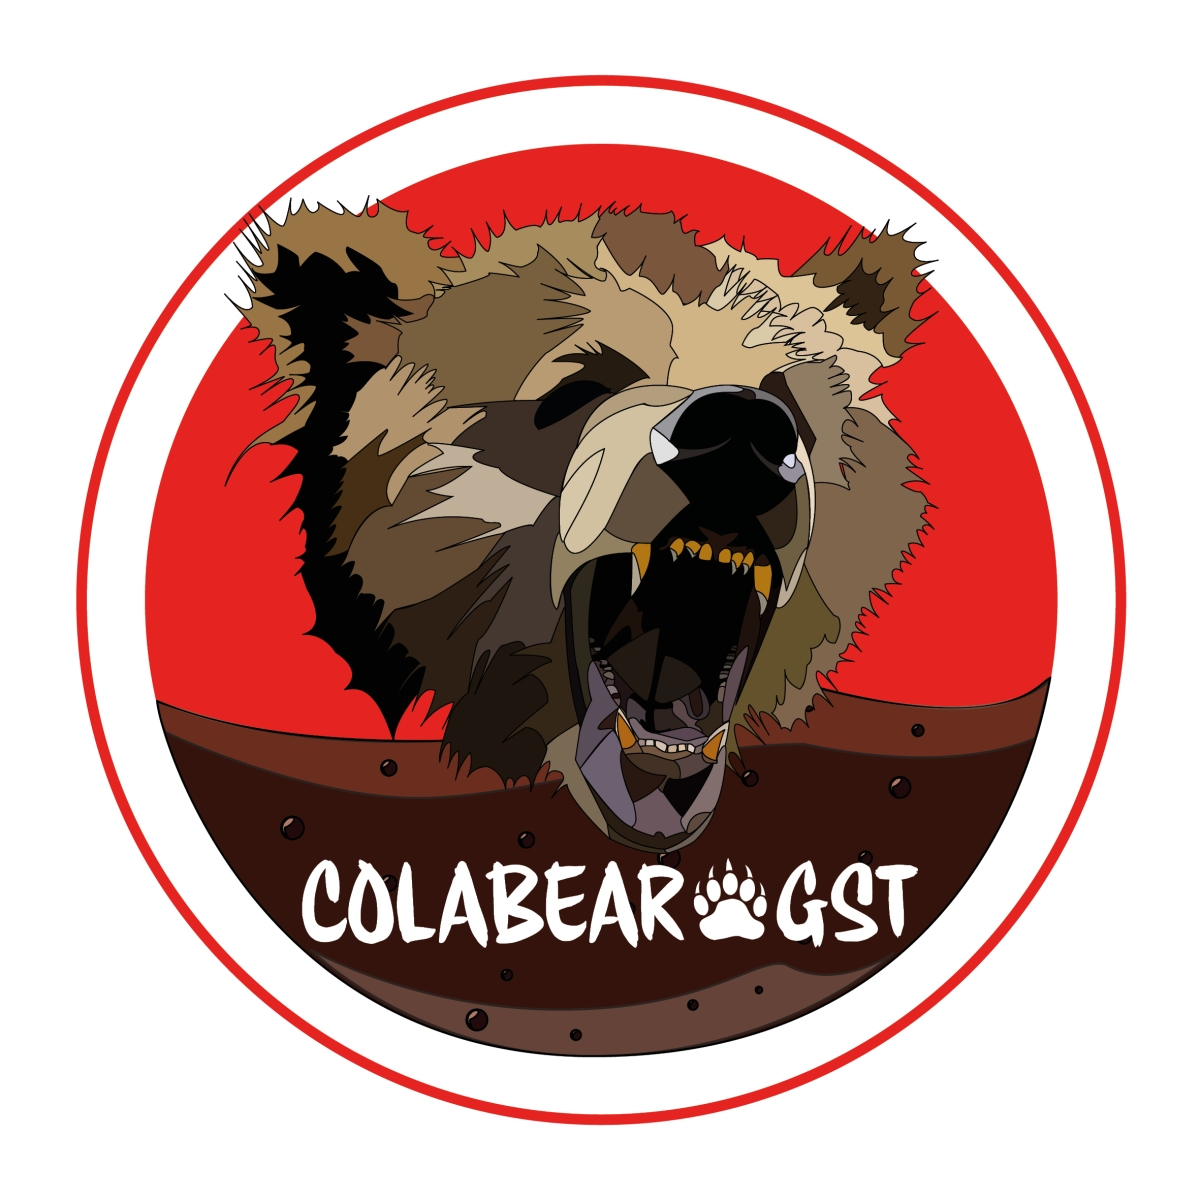 Cola bear logo v2